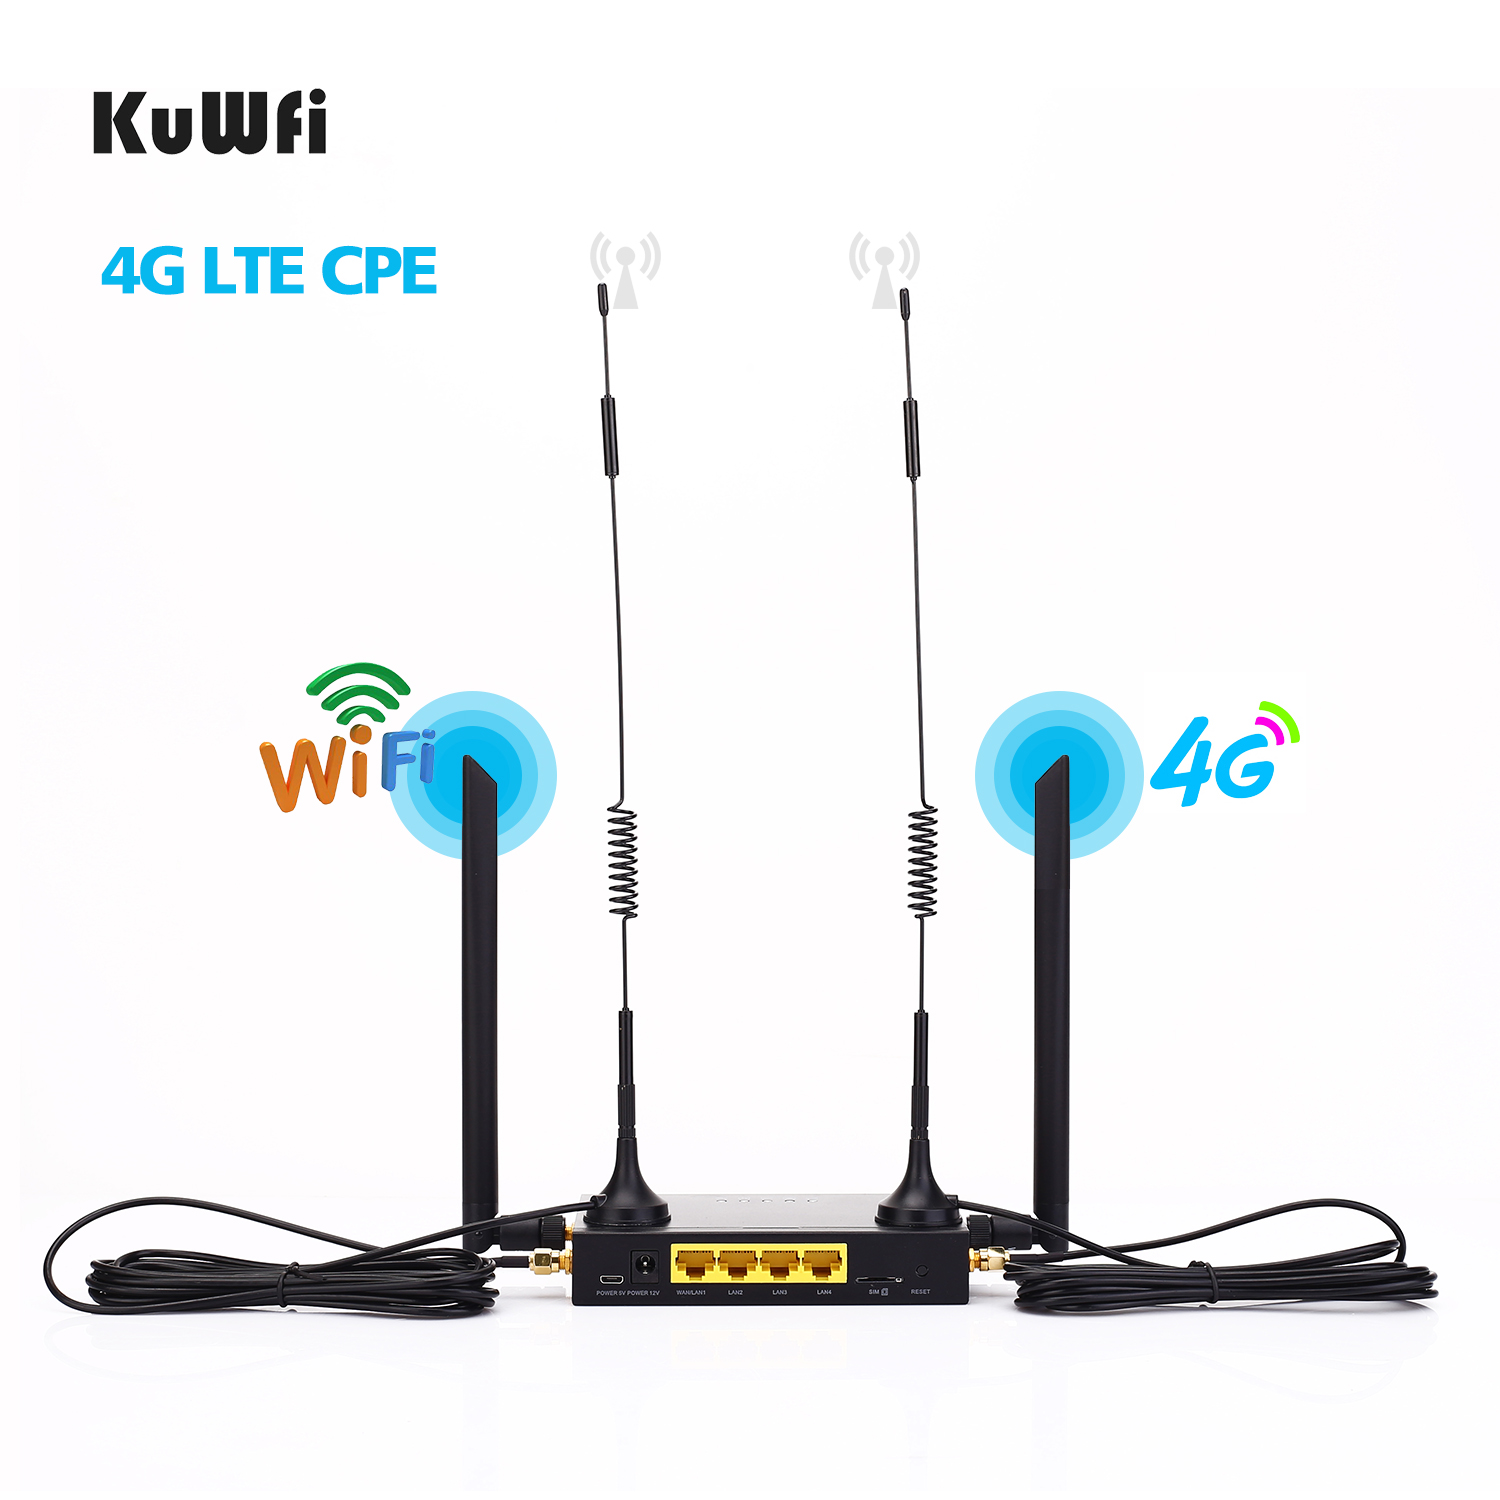 KuWFi Router 300Mbps Industrie Router CAT4 4G CPE Router Extender Starke Wifi Signal Suport 32Wifi benutzer Mit sim Karte Slot